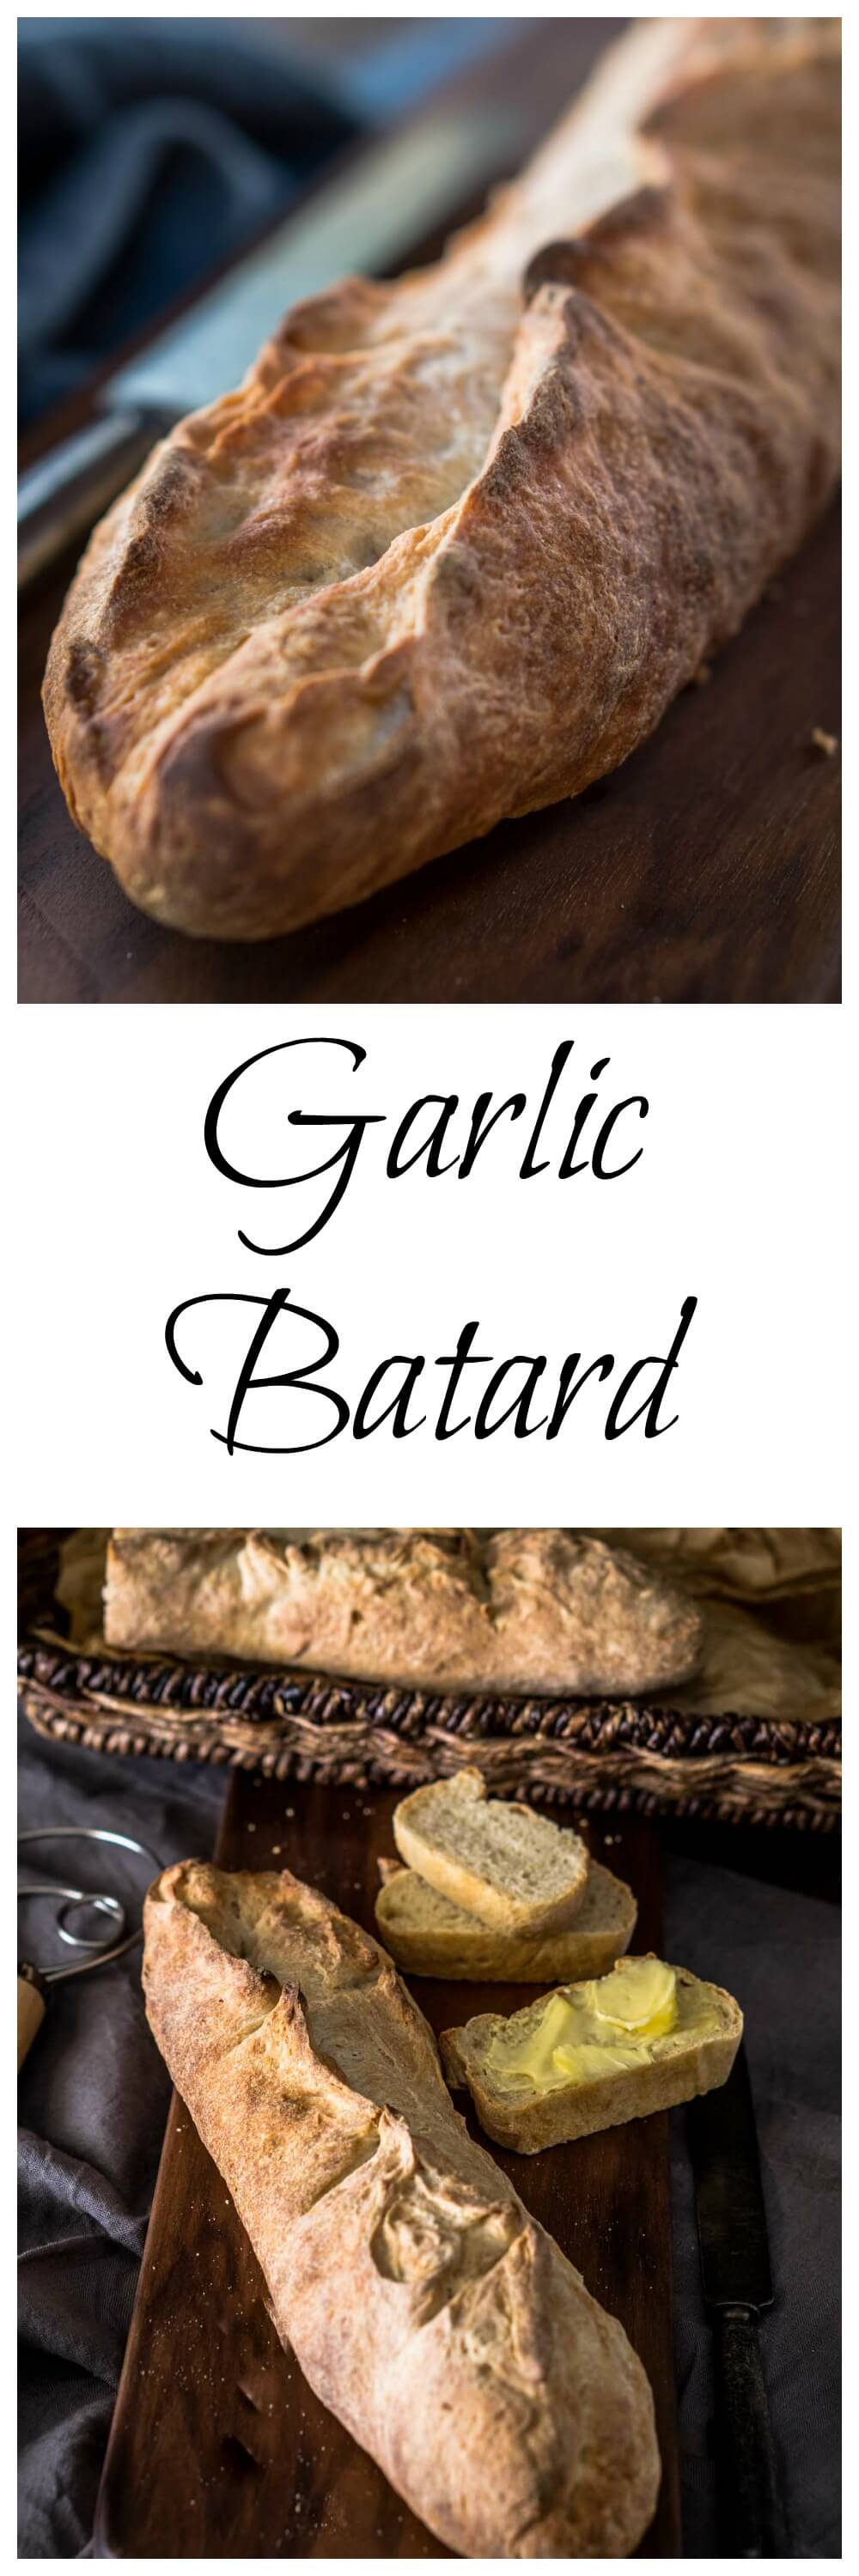 Garlic Batard is an artisanal bread that looks bakery made but made in your kitchen. The exterior has a crunchy crust and a tender center. The garlic flavor is present without taking over. This bread would be perfect with a pasta dish   HostessAtHeart.com